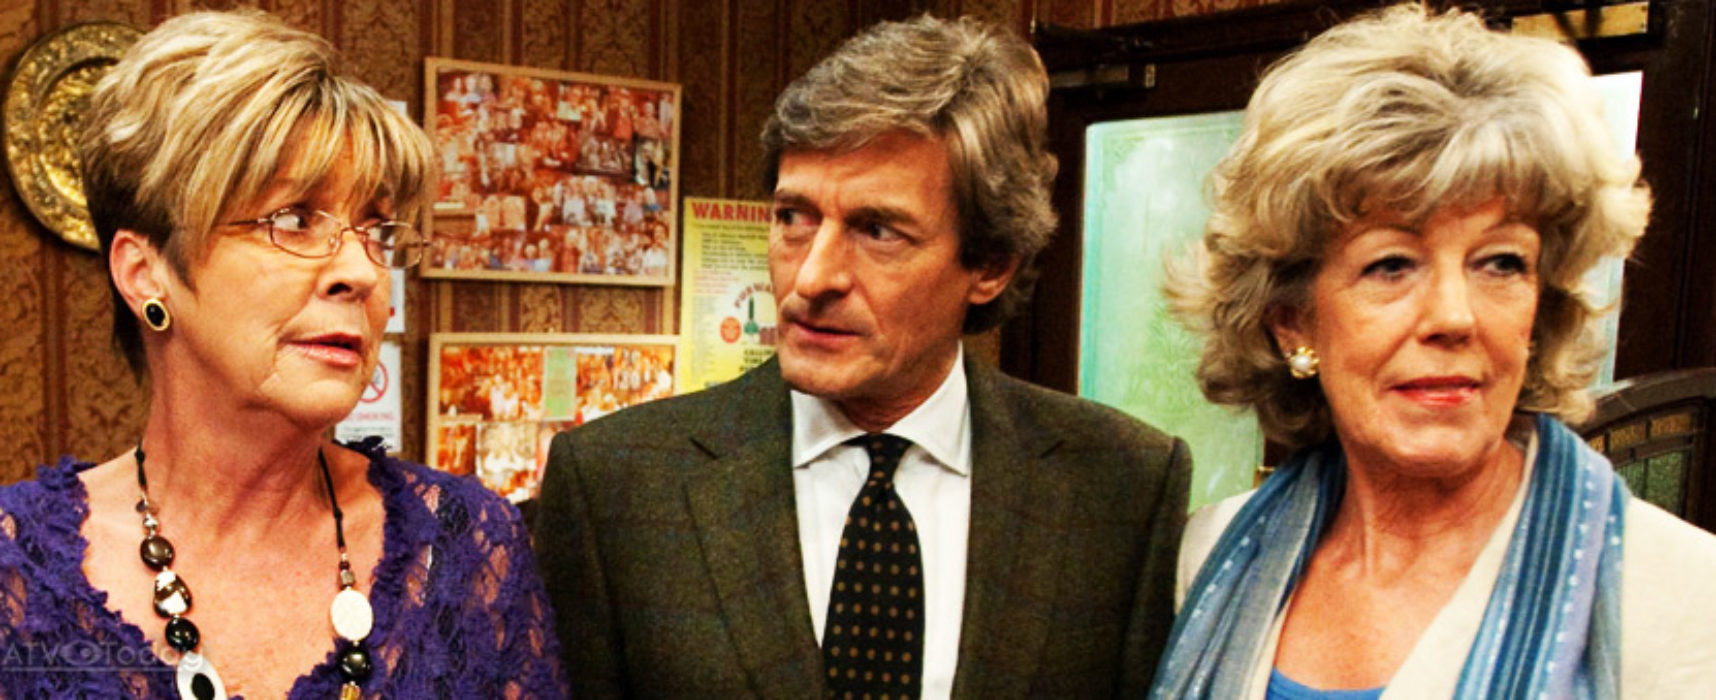 Nigel Havers opens up The Bidding Room for BBC One